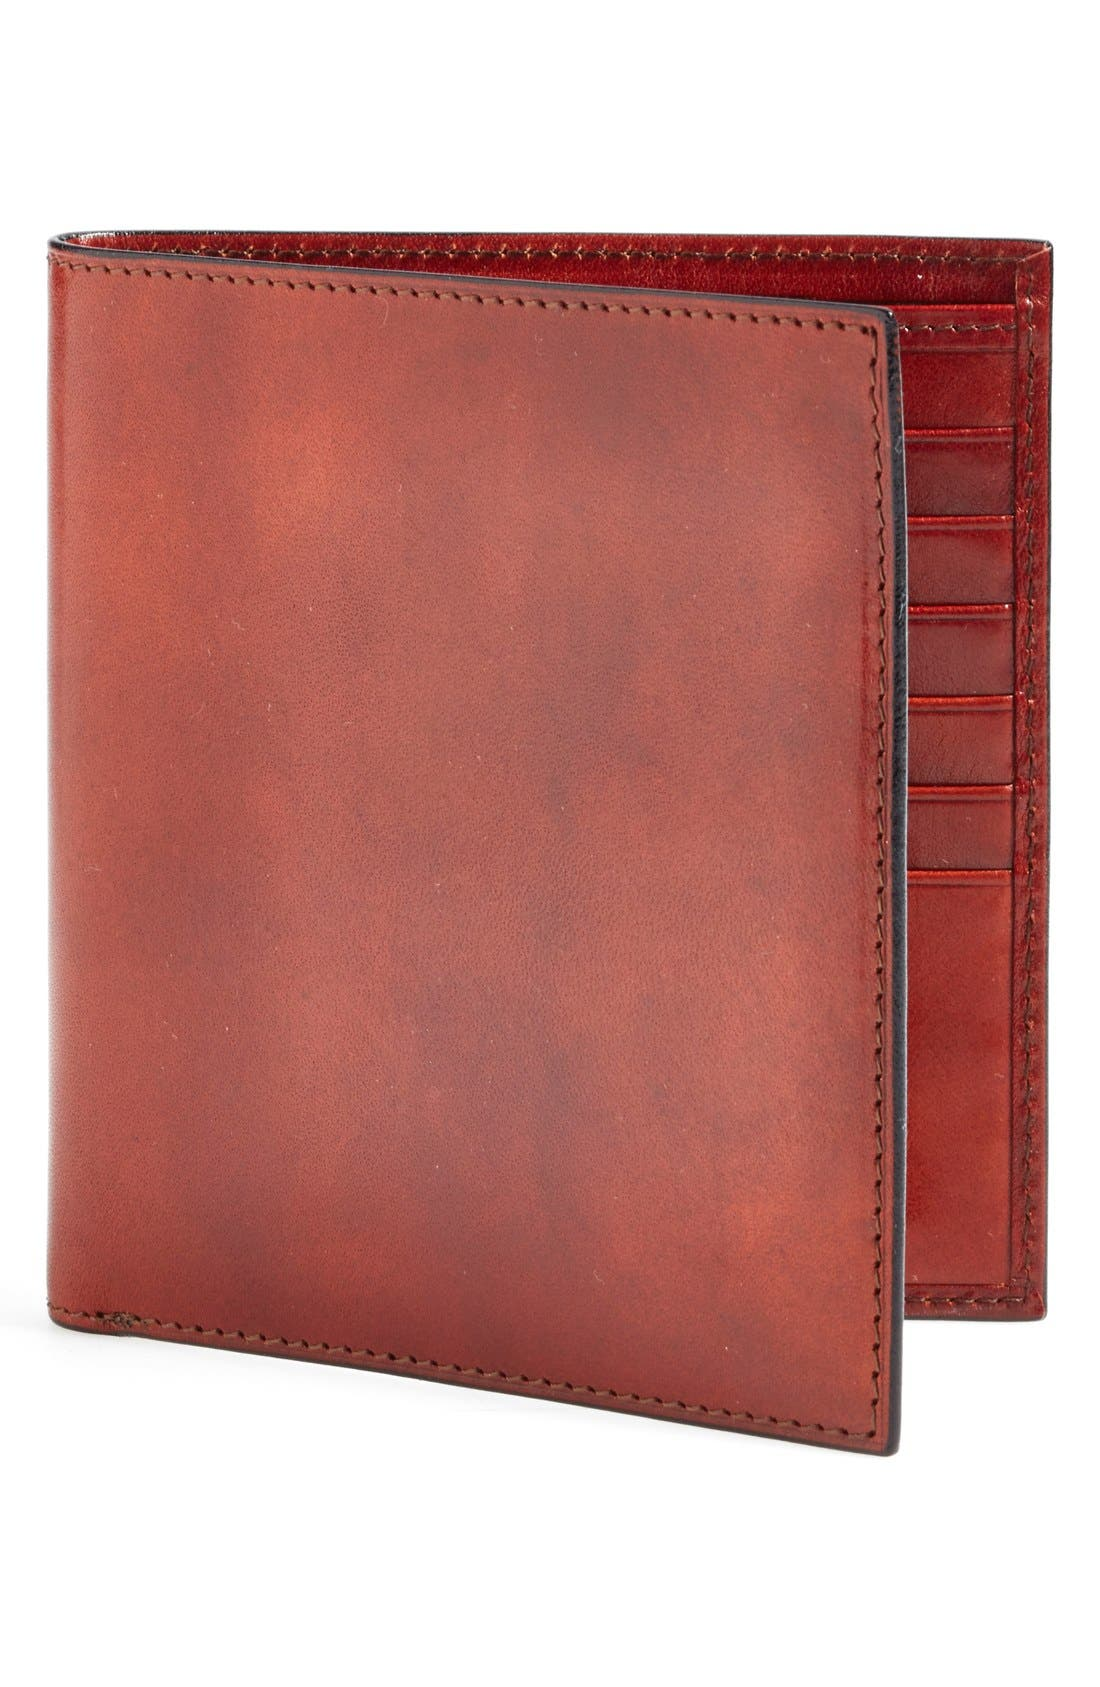 'Old Leather' Credit Wallet,                         Main,                         color, Cognac